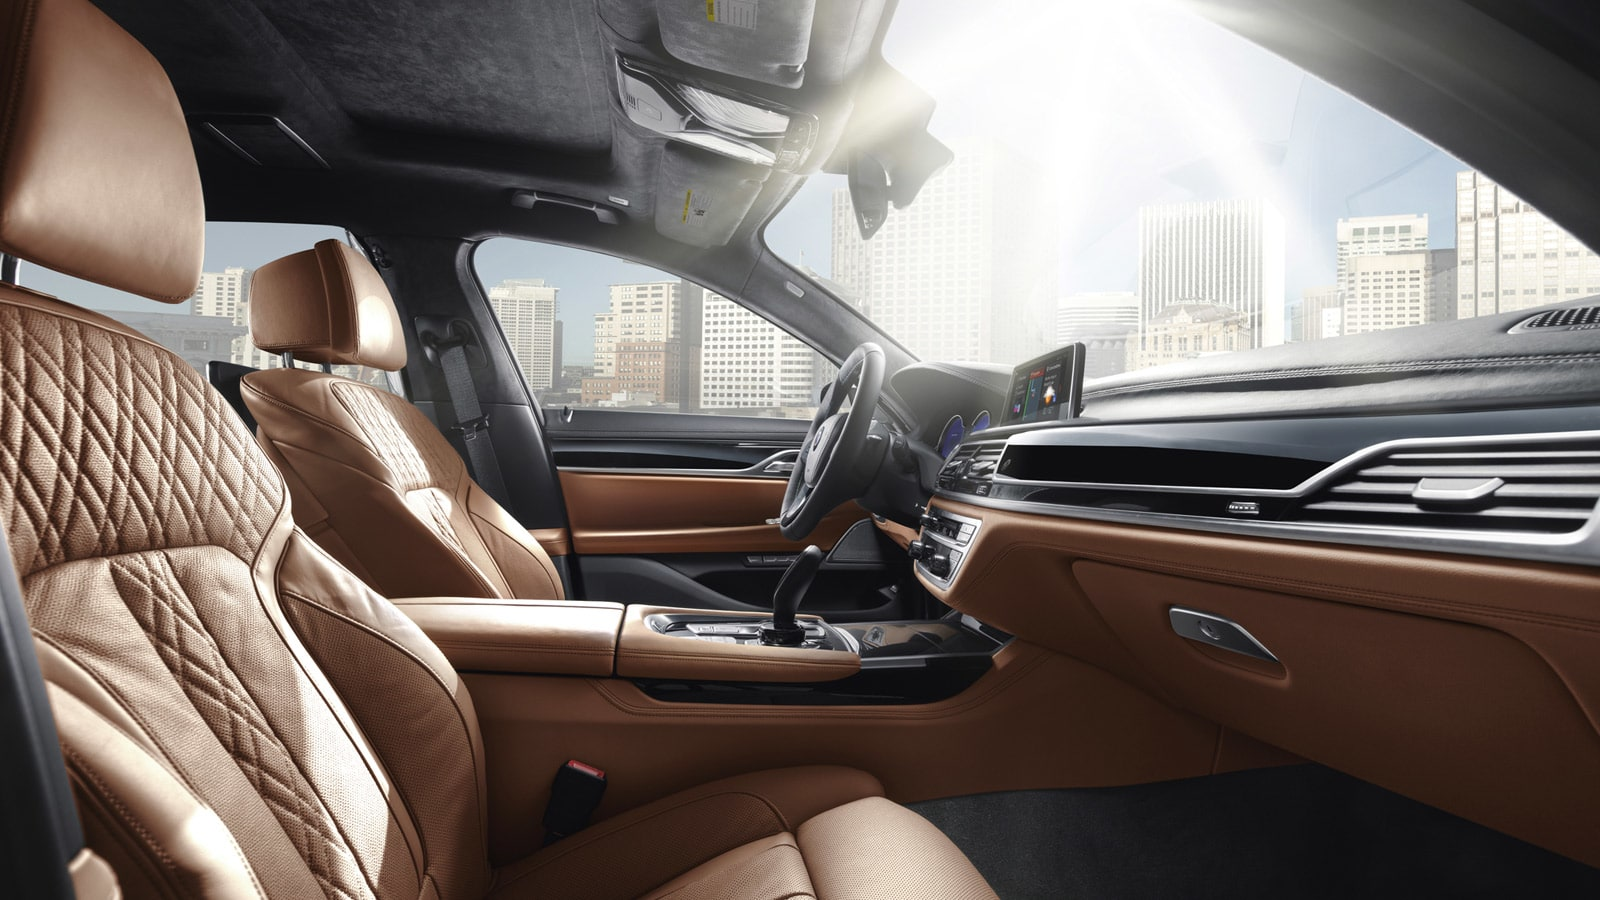 Outstanding Luxury in the 2019 7 Series